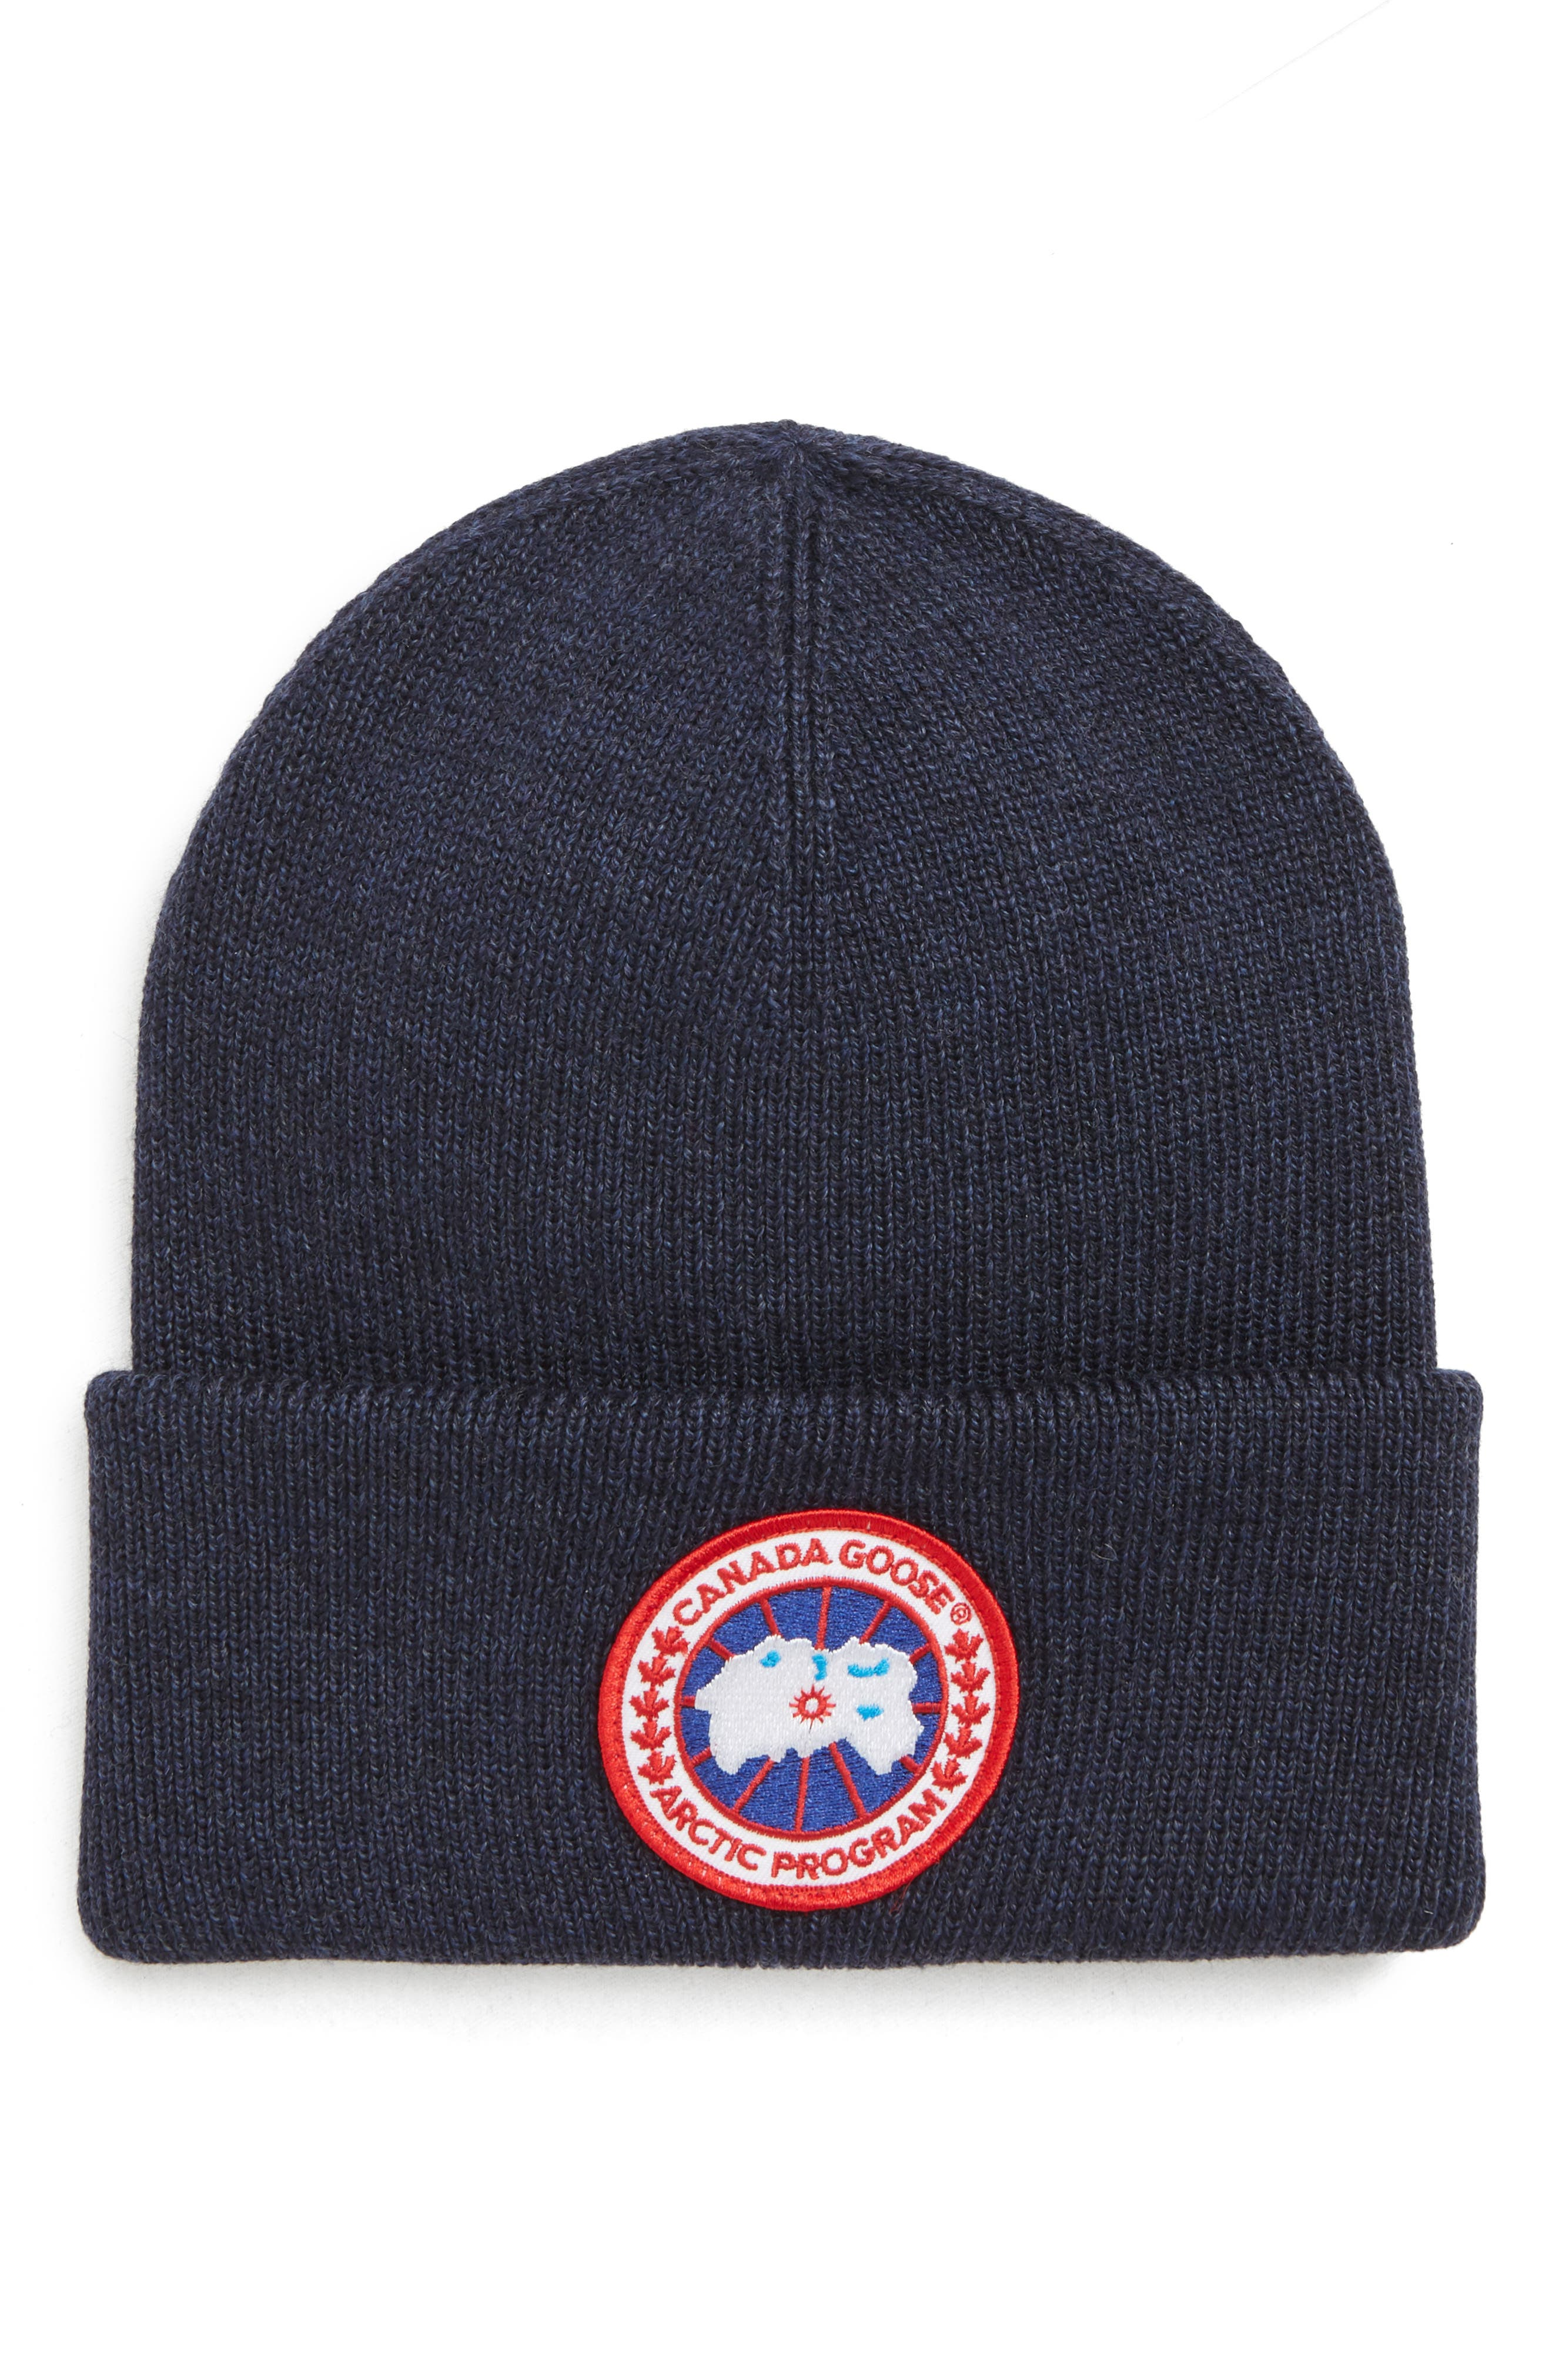 Arctic Disc Merino Wool Toque Beanie - Black in Navy Heather